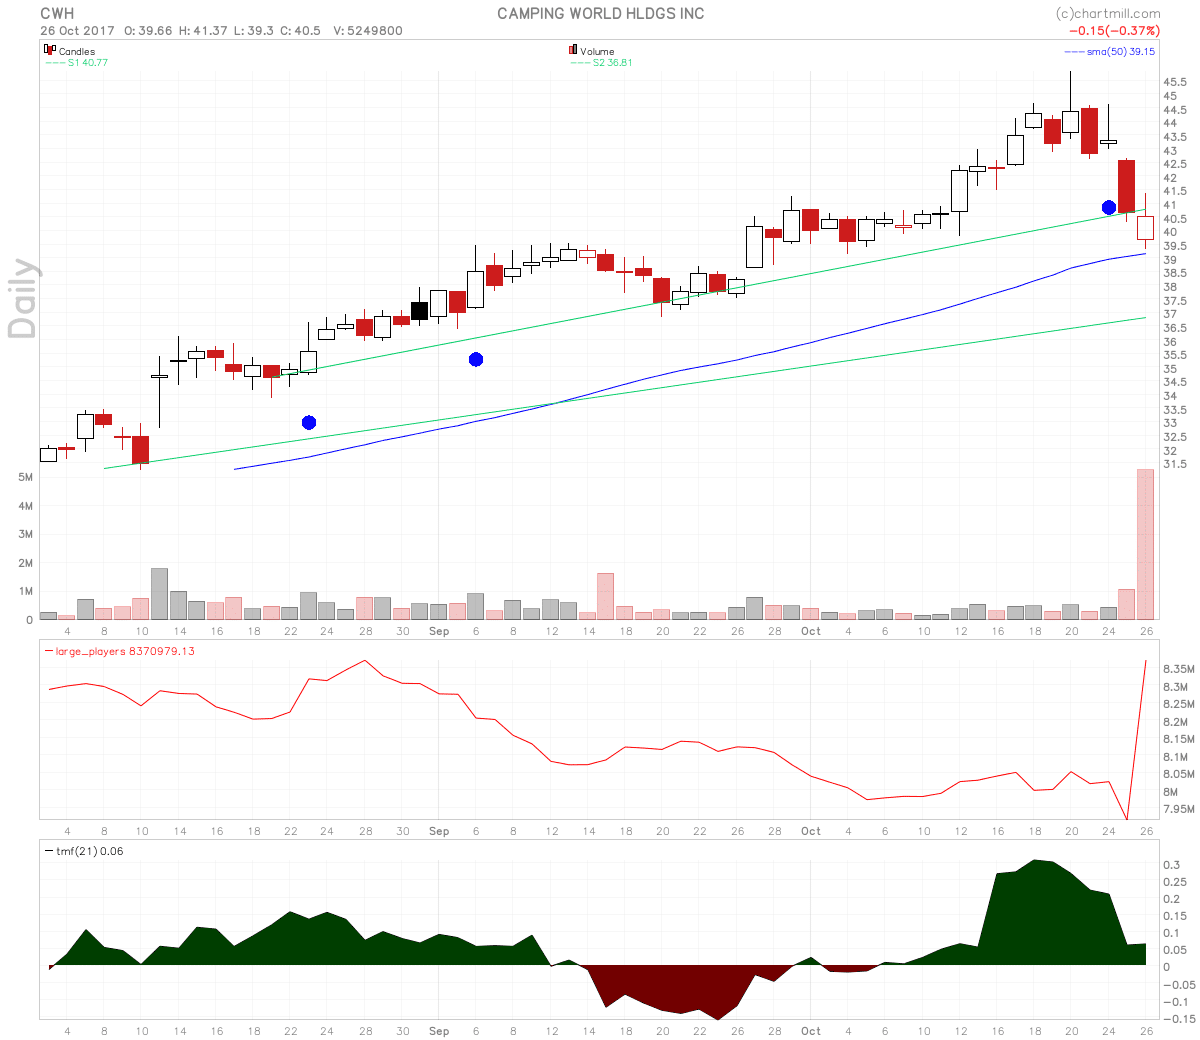 Camping World Holdings stock chart shows huge positive divergence on large players volume.